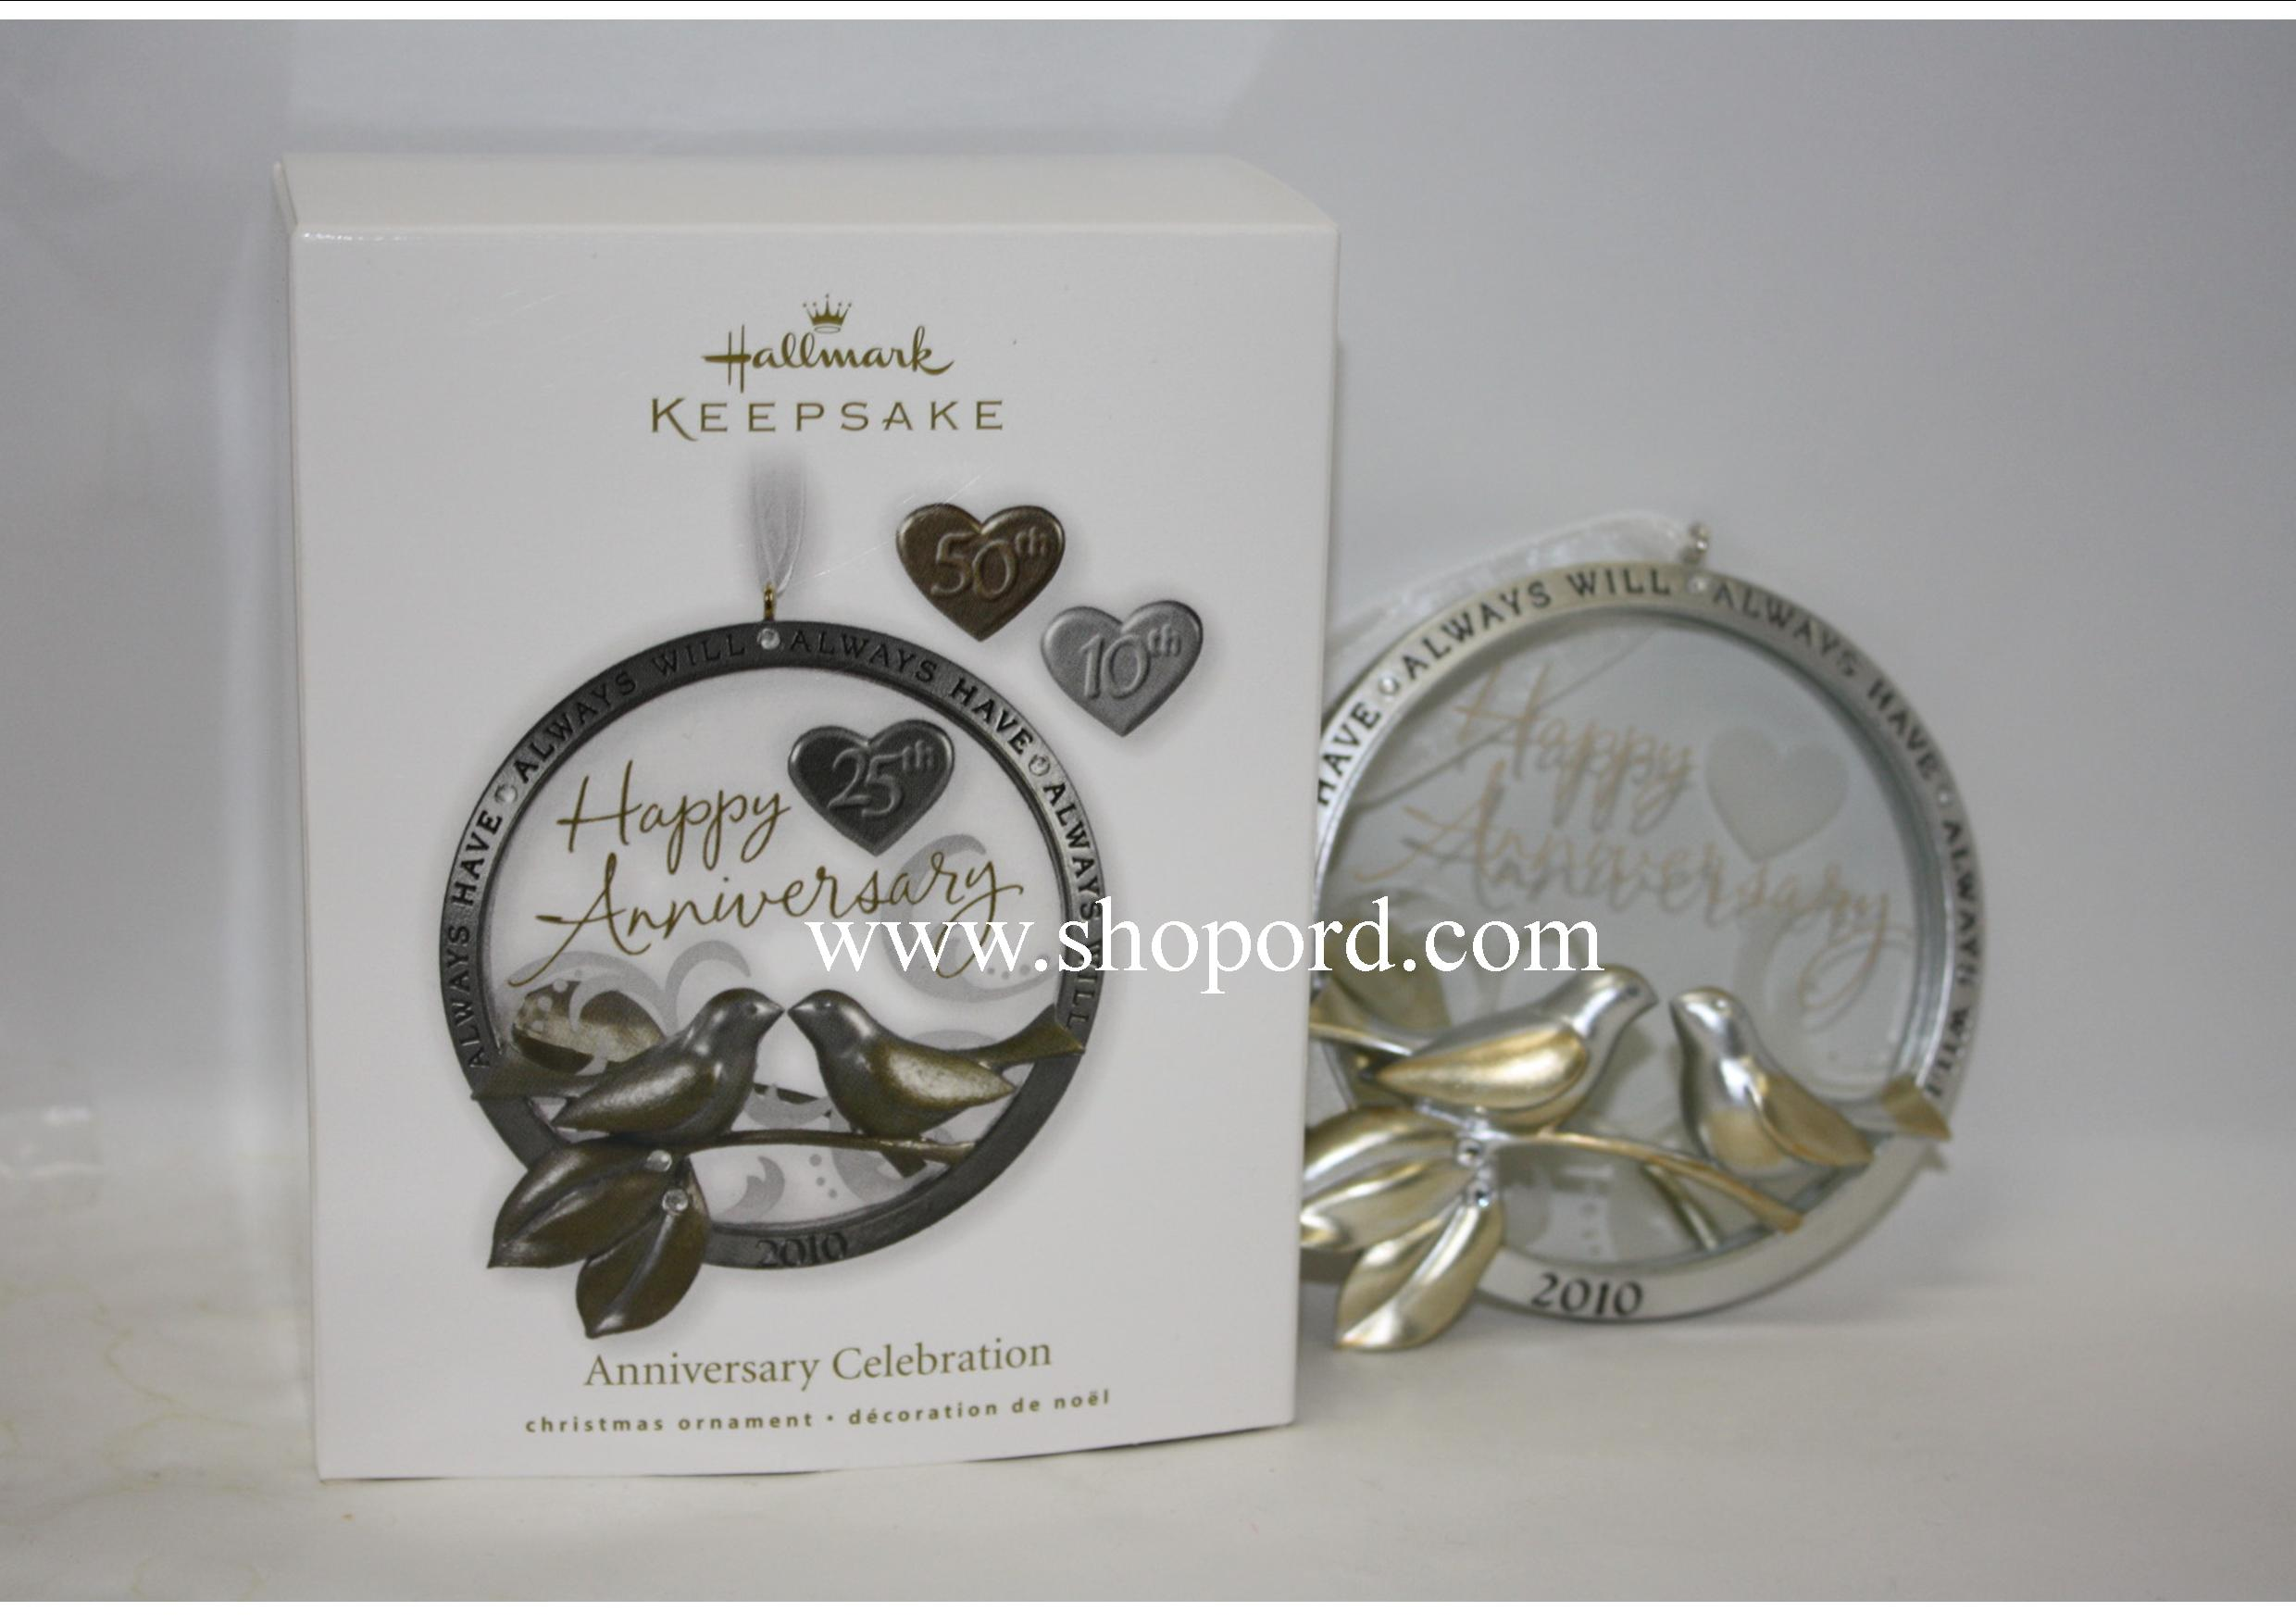 Hallmark 2010 Anniversary Celebration Ornament QXG7536